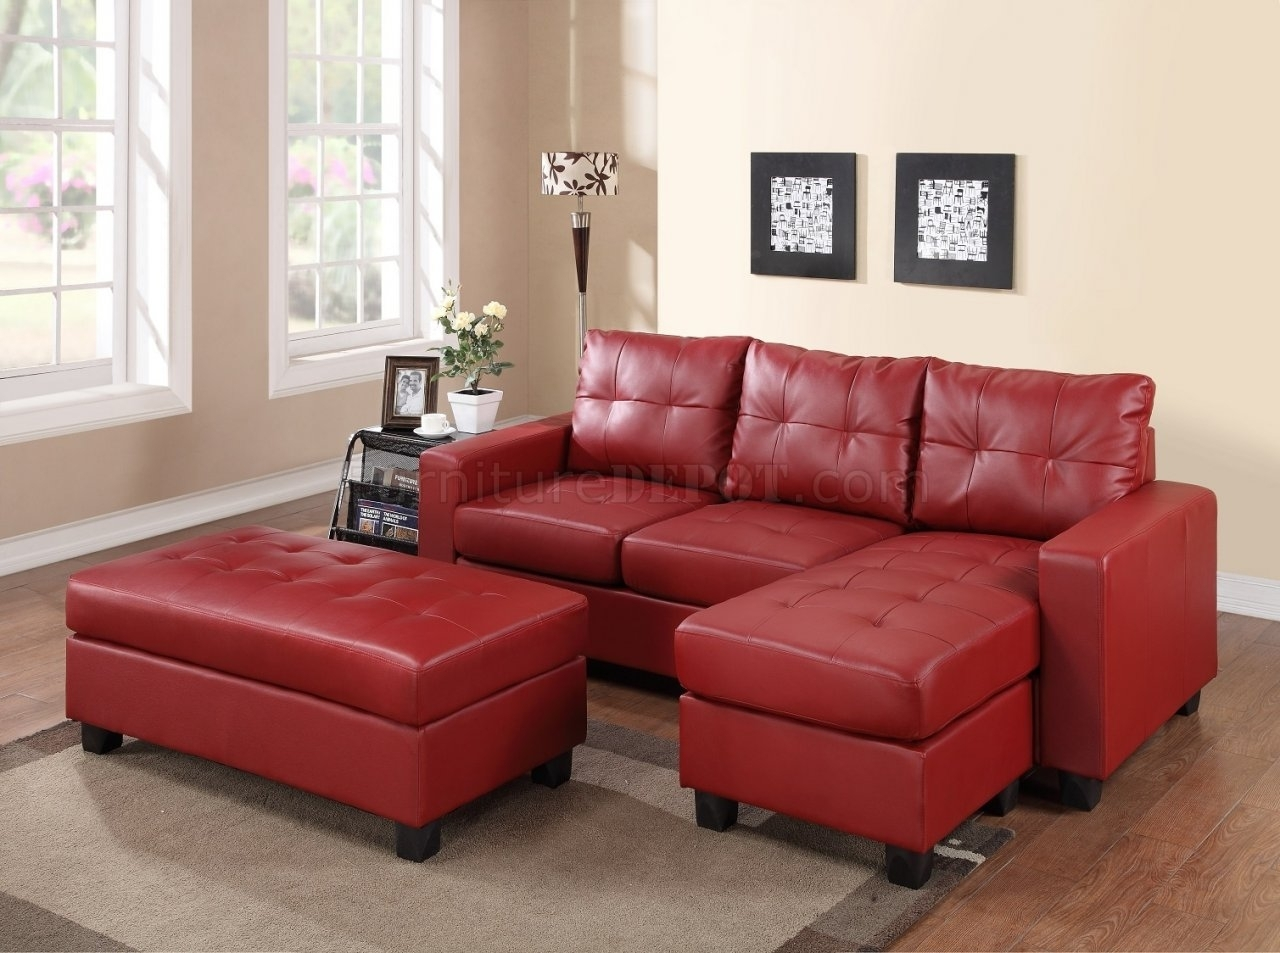 Beautiful Red Leather Sectional Sofa With Chaise Photos With Red Leather Sectional Sofas With Recliners (View 7 of 10)